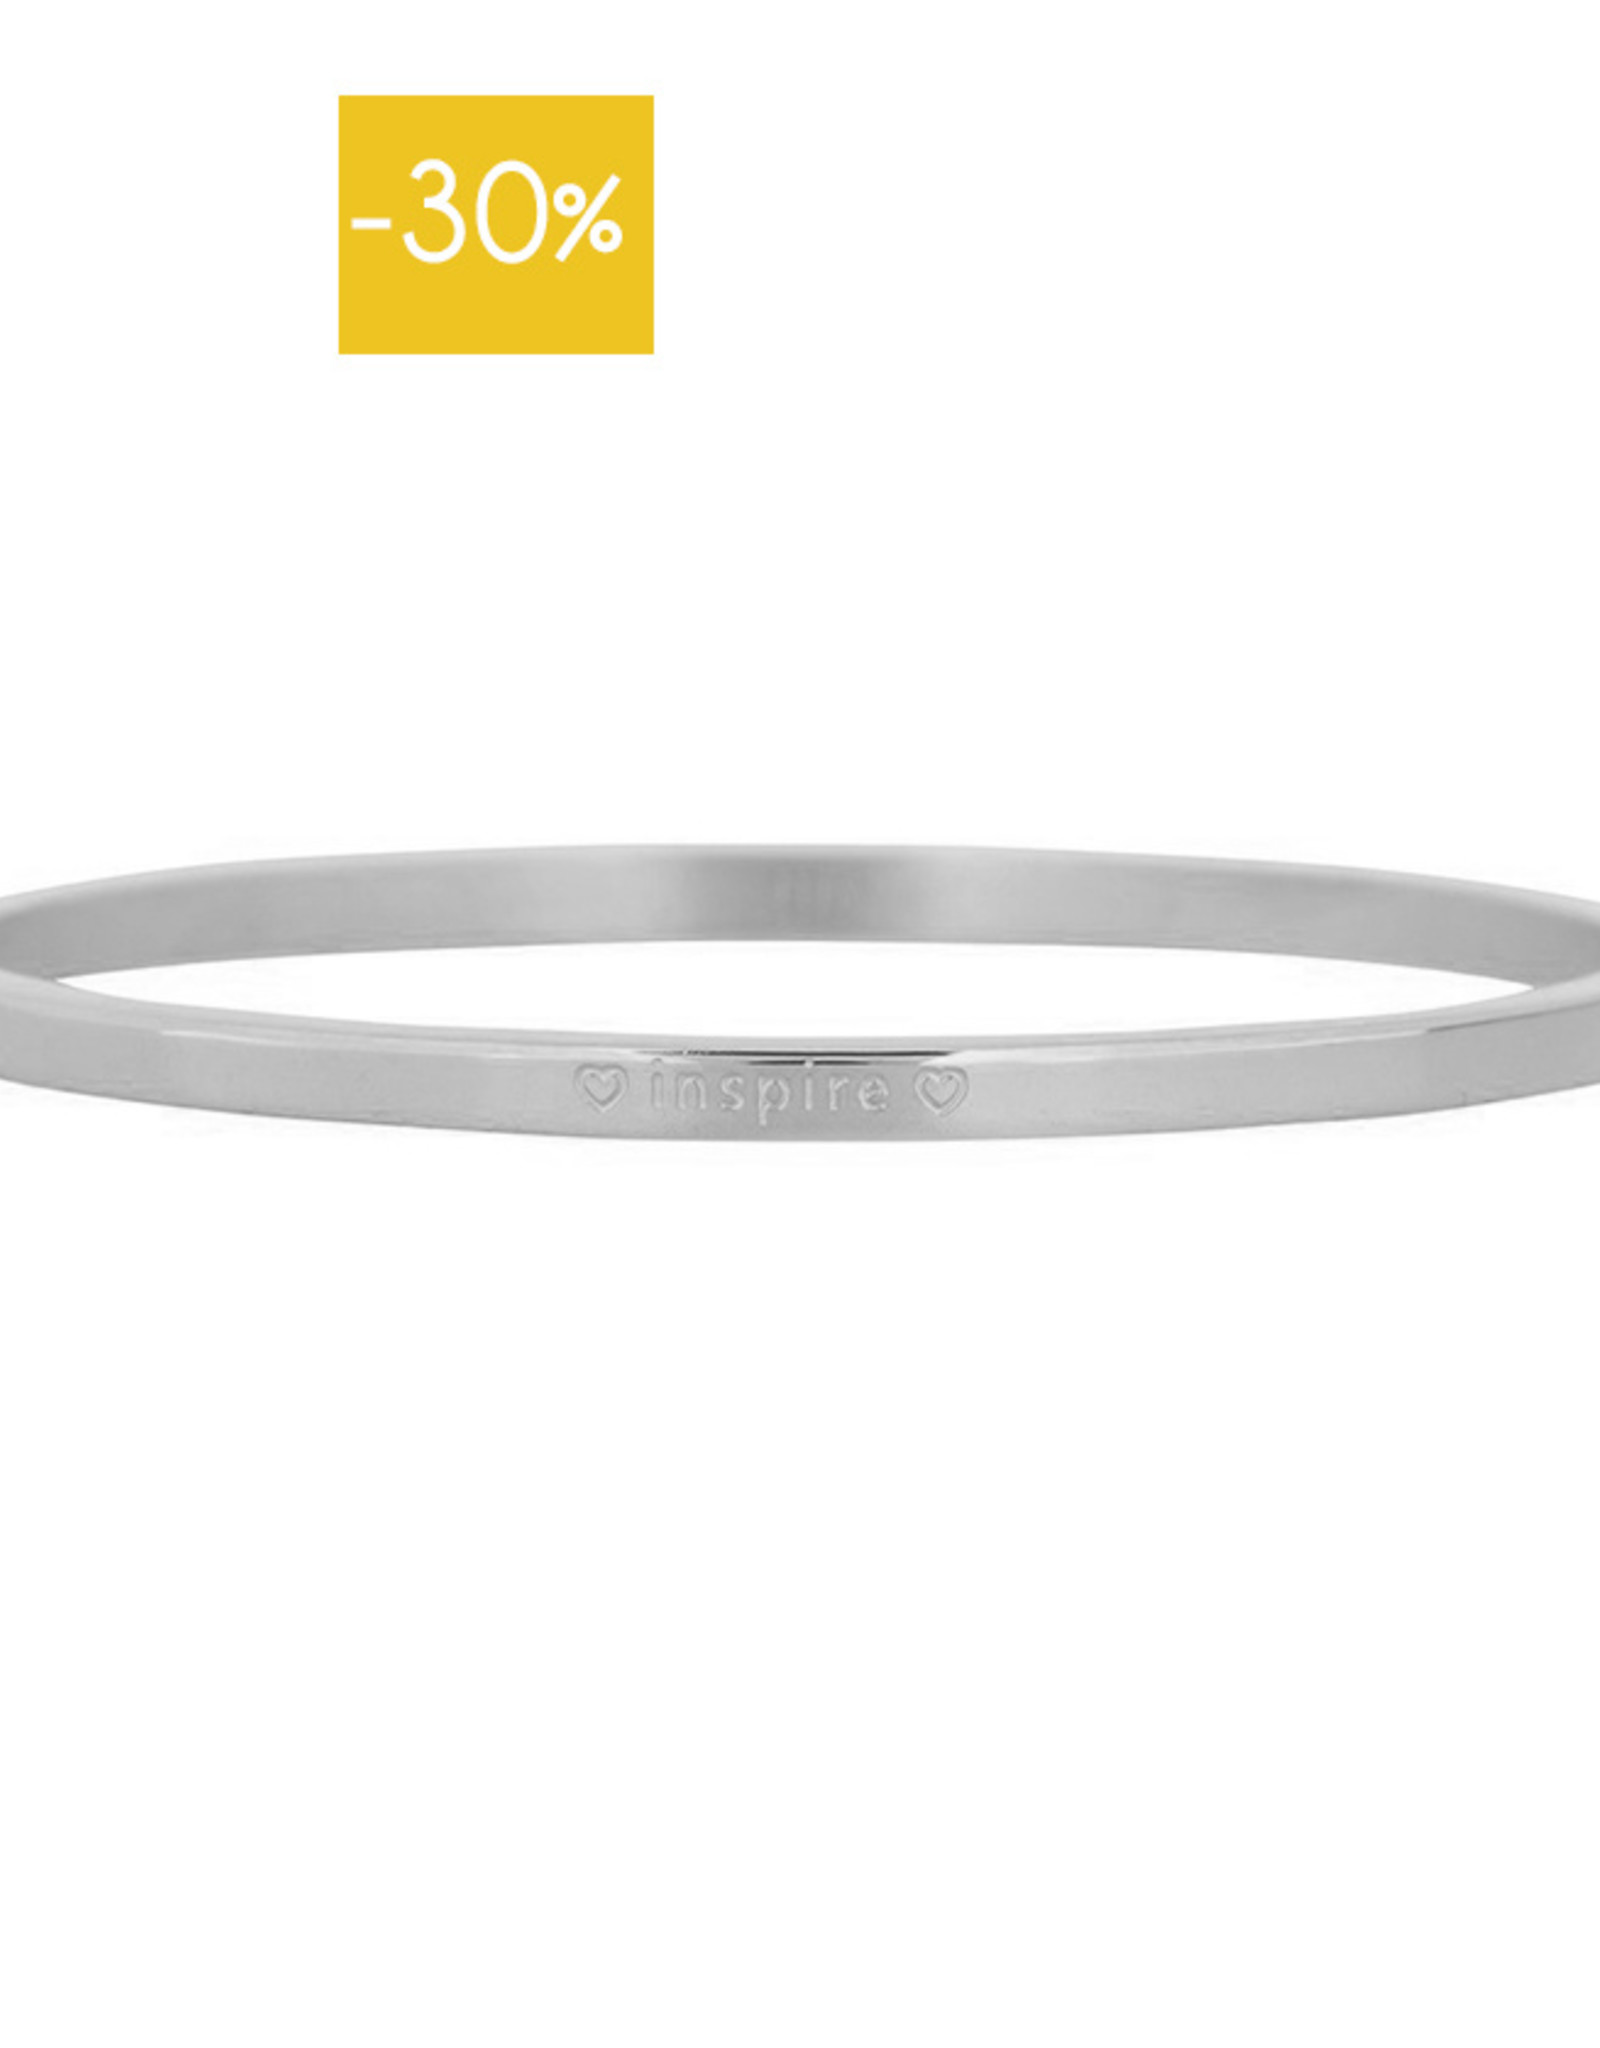 My Jewelry Bangle 3.0 'Inspire'-silver